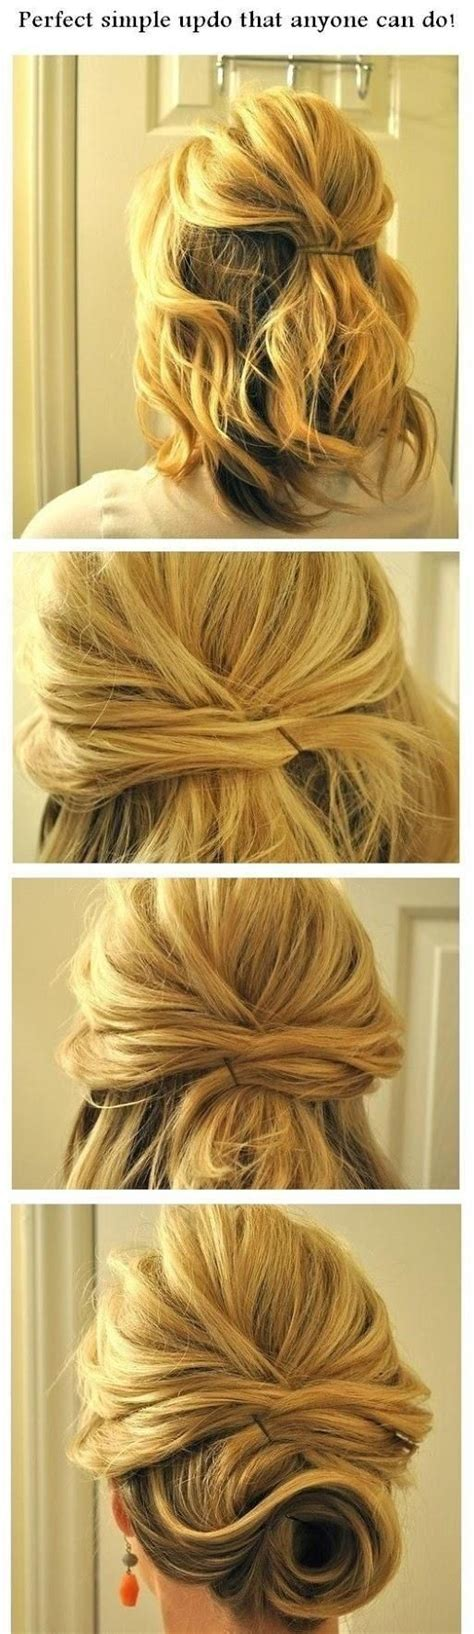 Easy Updo Hairstyle Tutorials by 14 Easy Step By Step Updo Hairstyles Tutorials Pretty